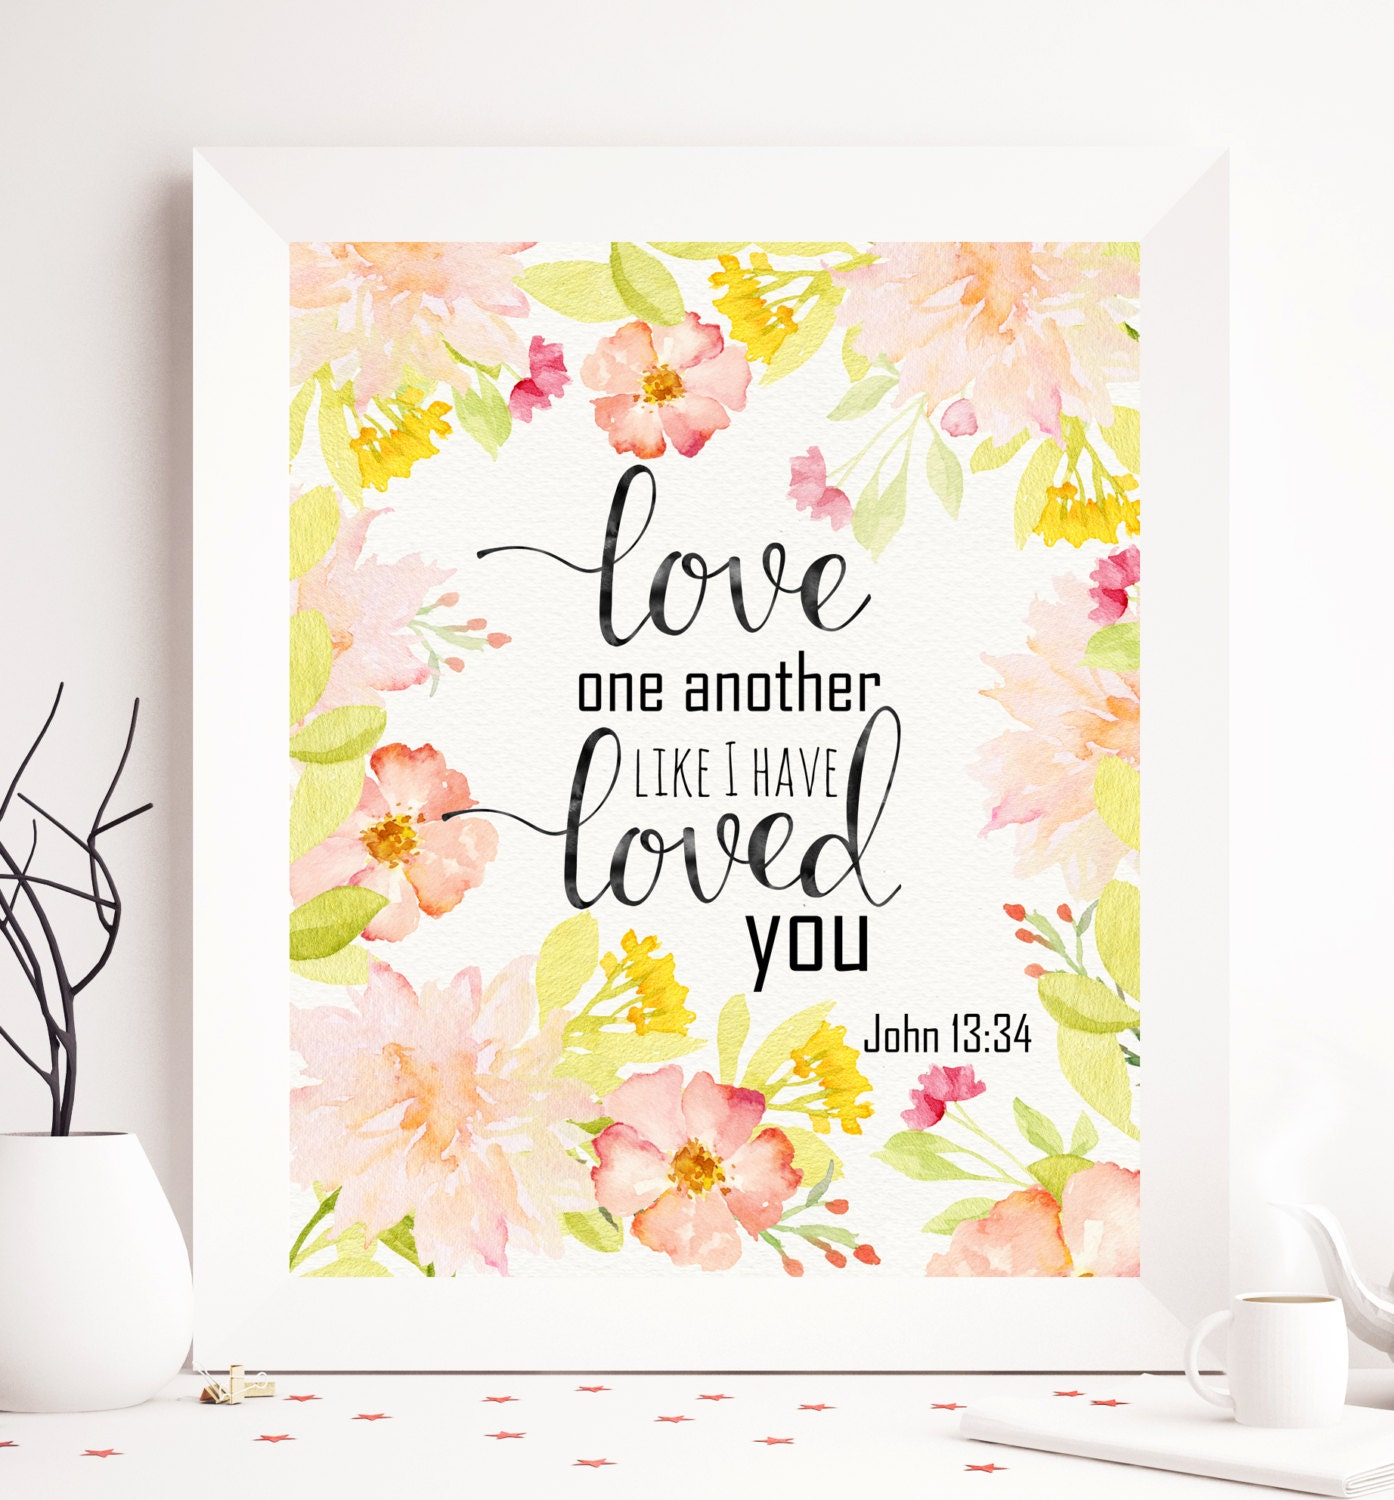 Love One Another: Love One Another As I Have Loved You Printable John 13:34